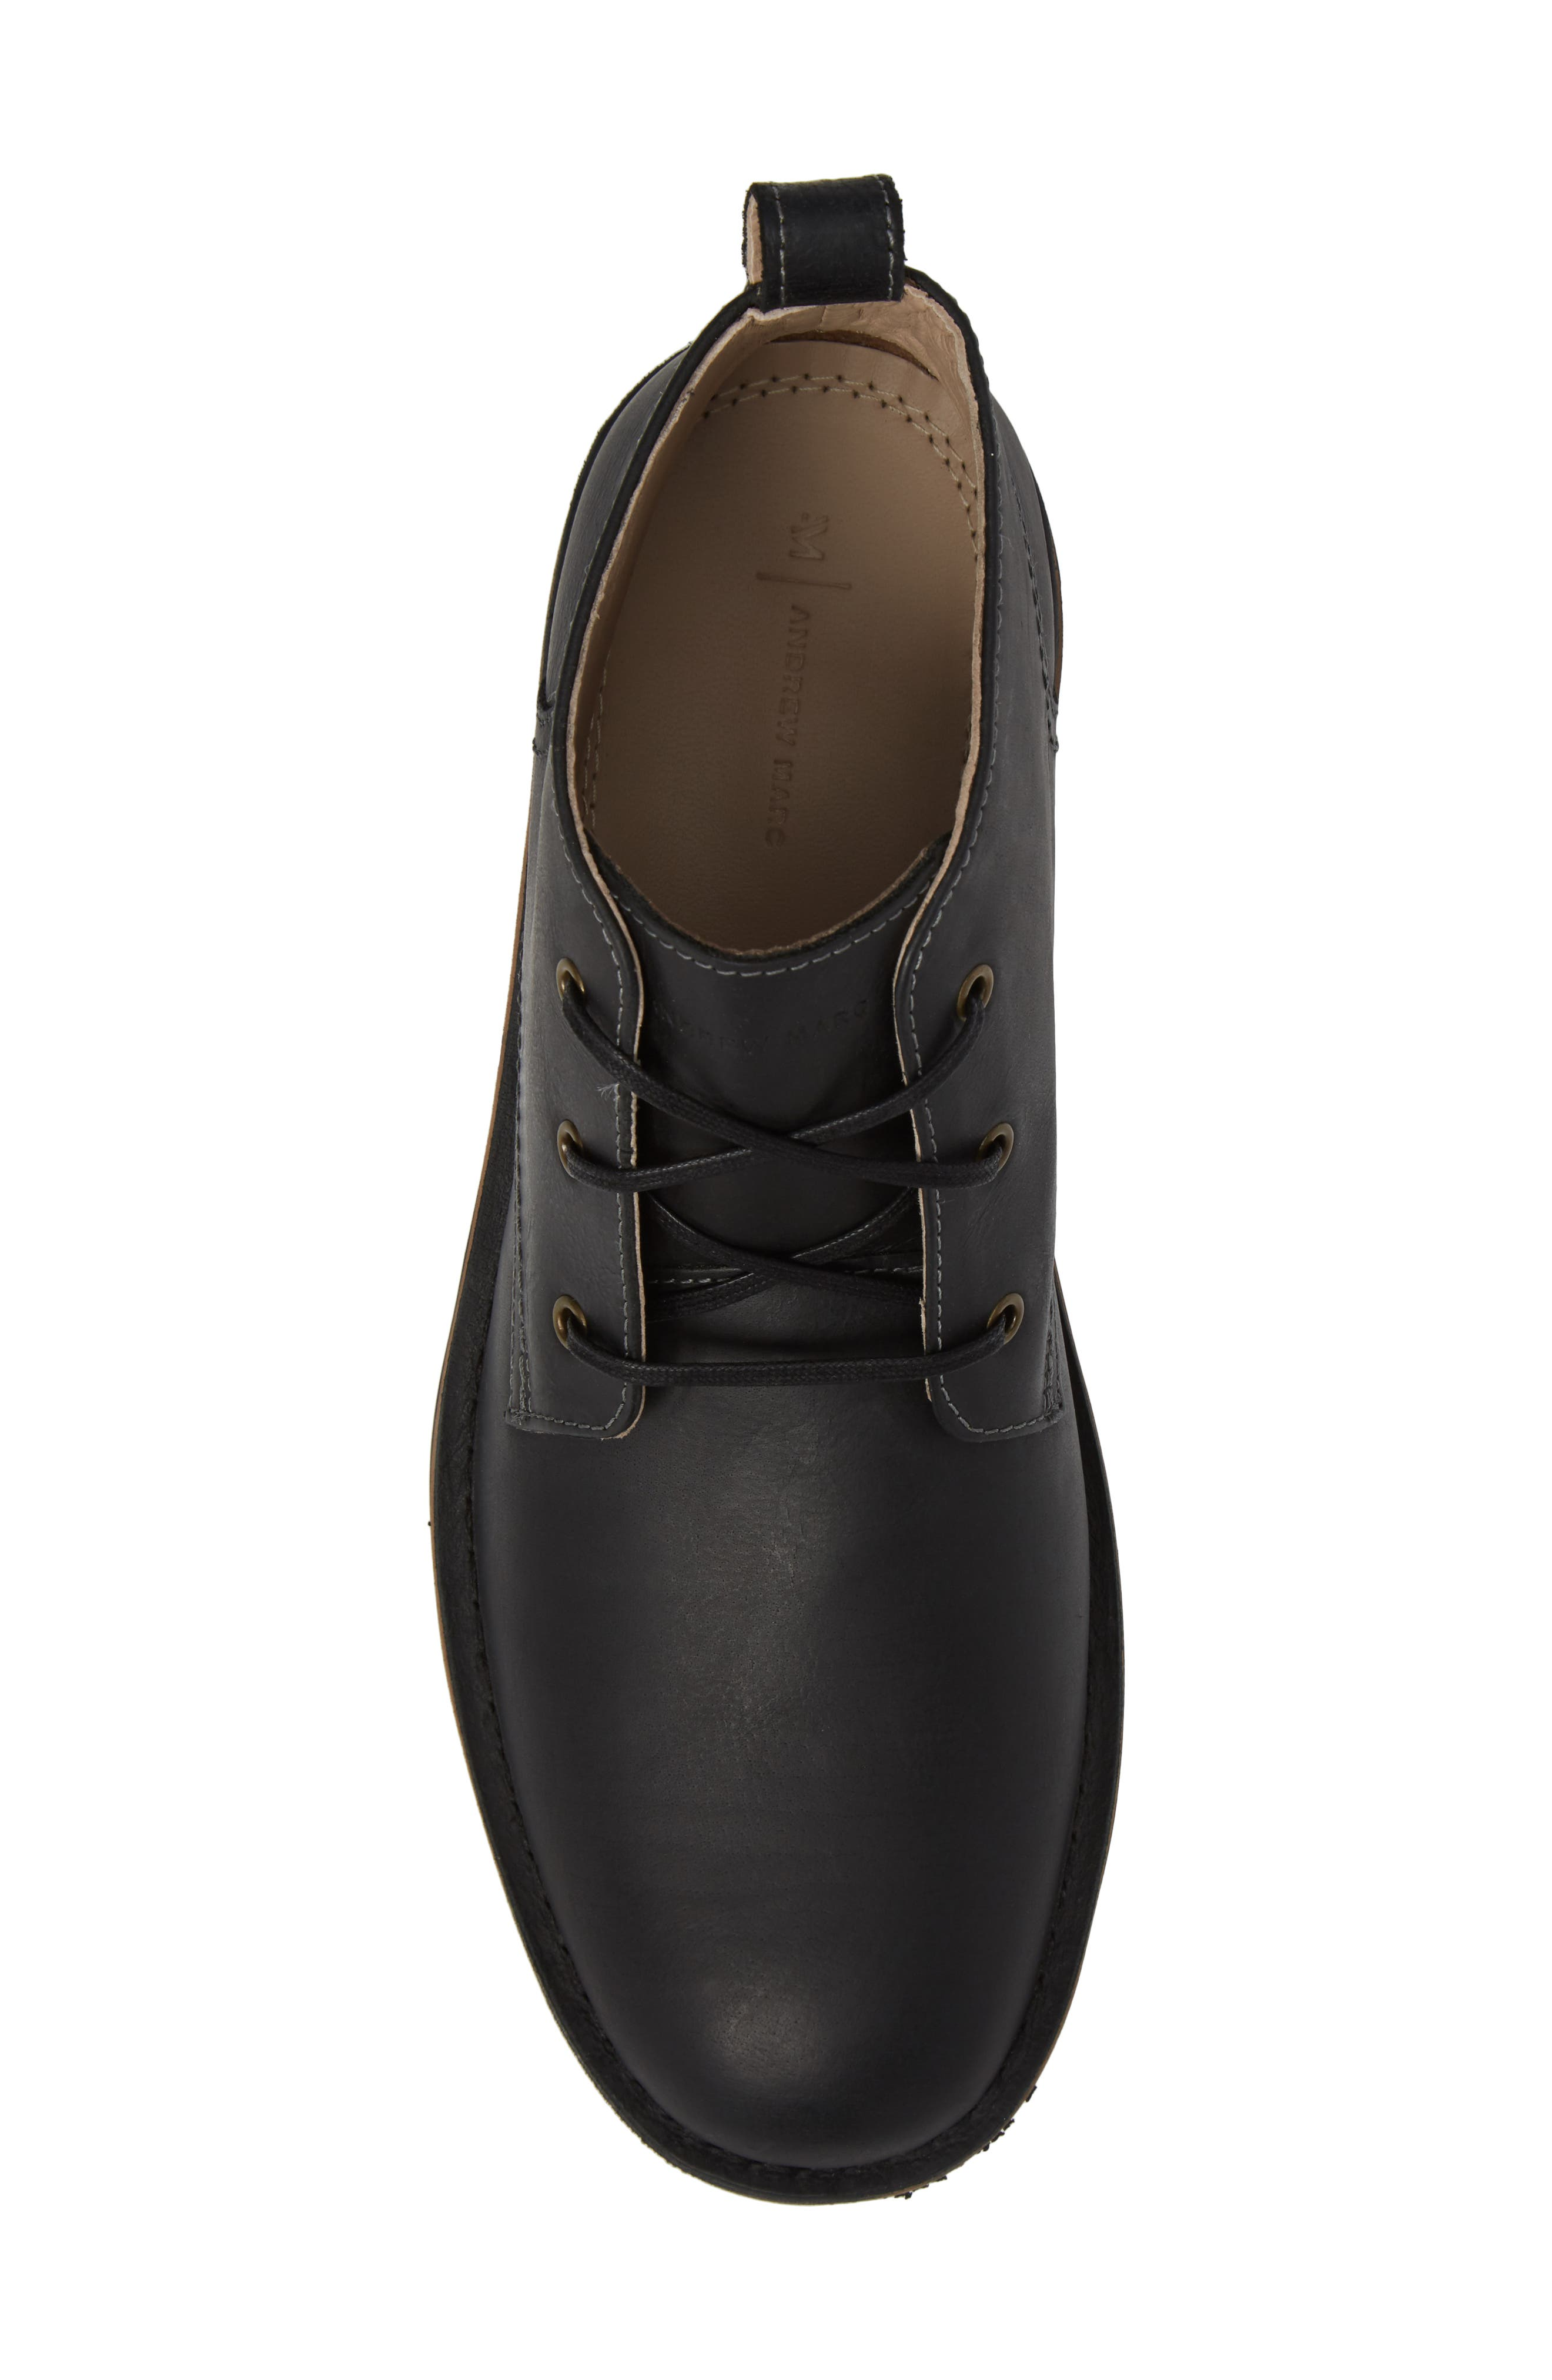 Dorchester Chukka Boot,                             Alternate thumbnail 5, color,                             Black Leather